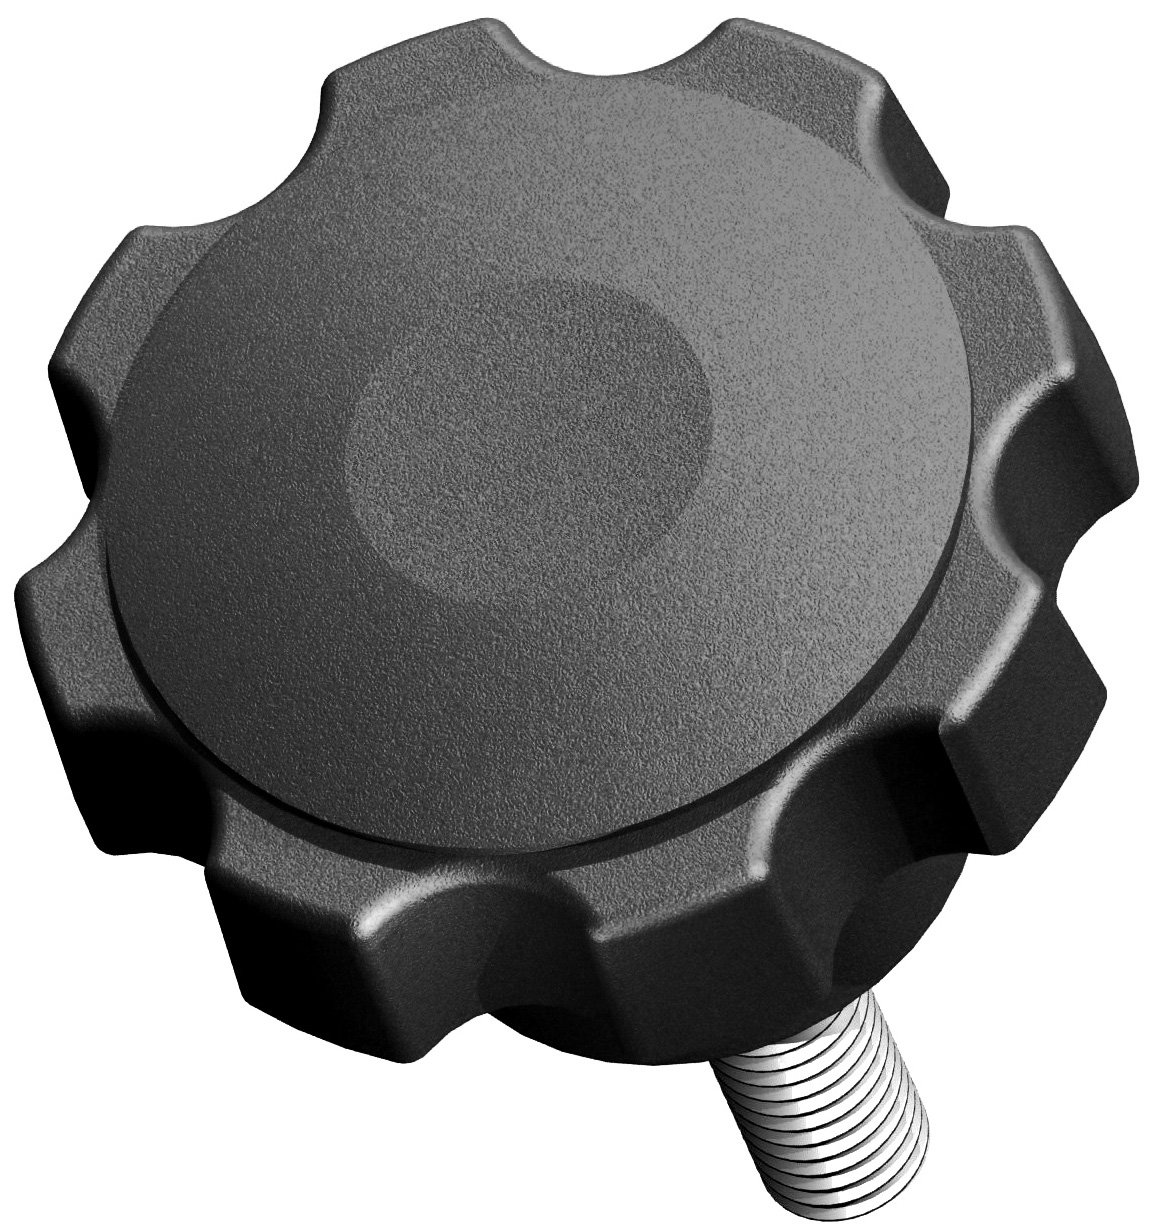 Innovative Components AN5C1750F7S21 2.48'' Fluted knob thru hole 5/16 - 18 x 1.75'' steel zinc stud soft touch (Pack of 10)